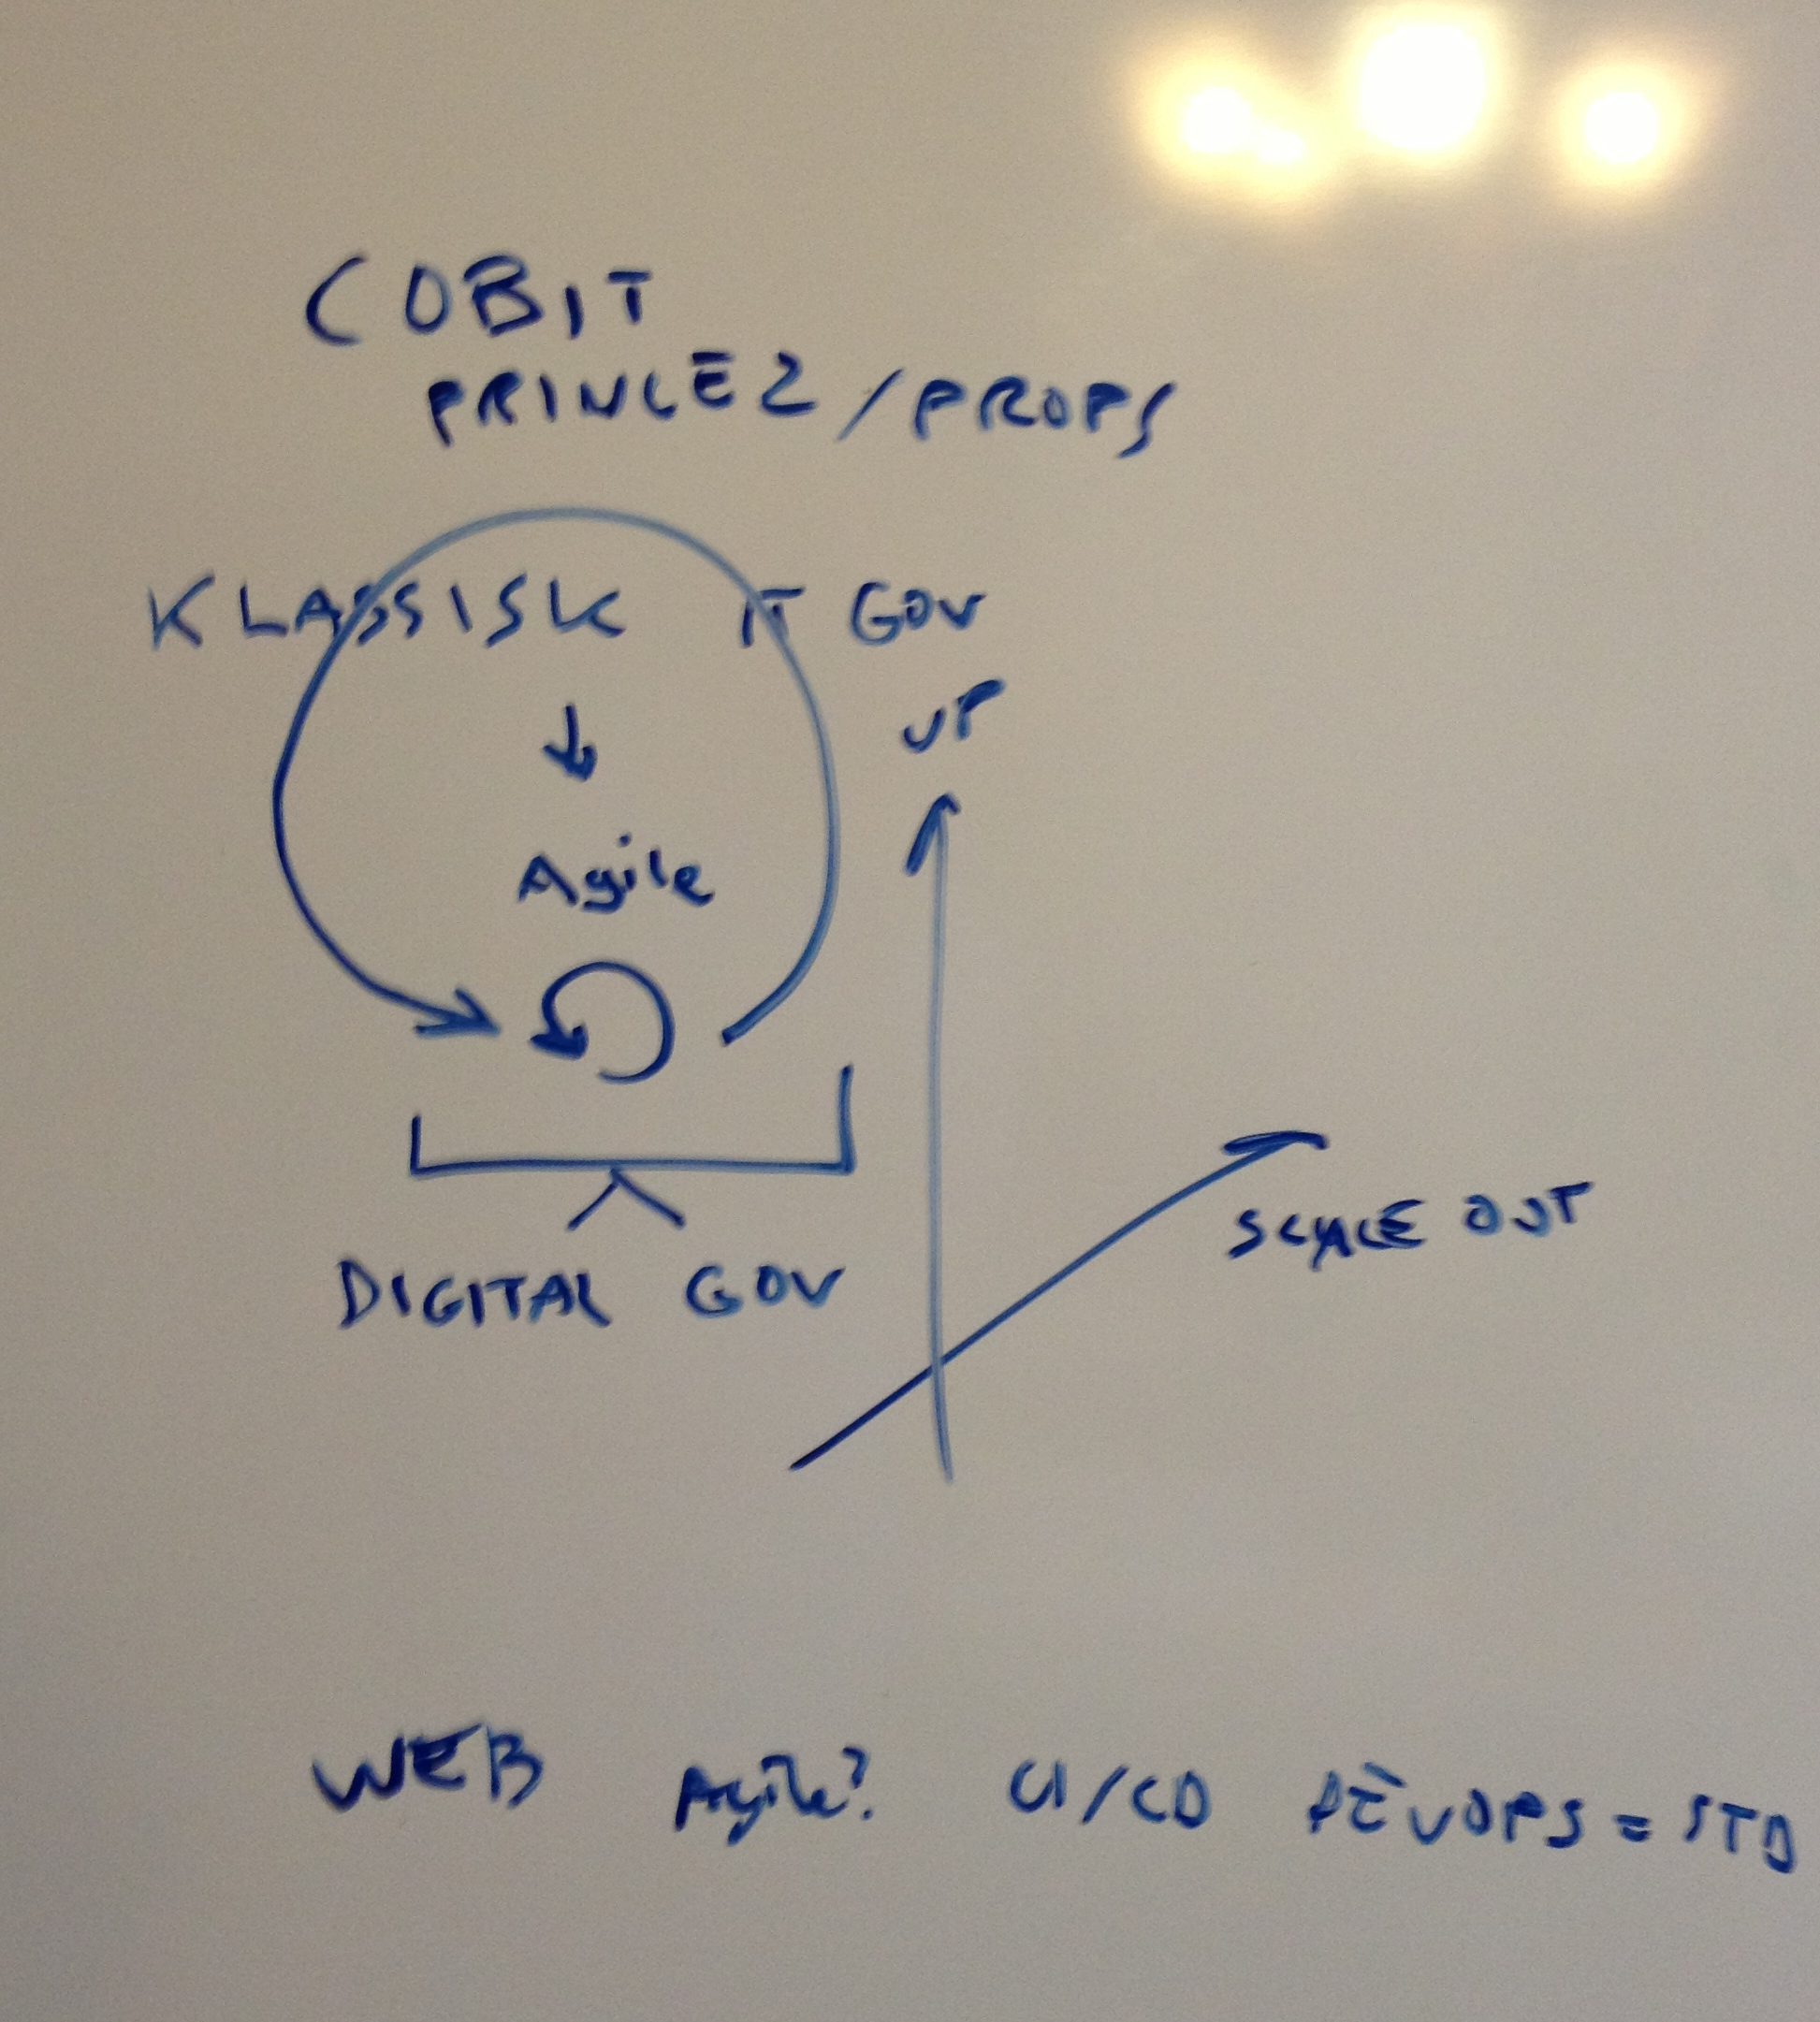 Digital governance context and components